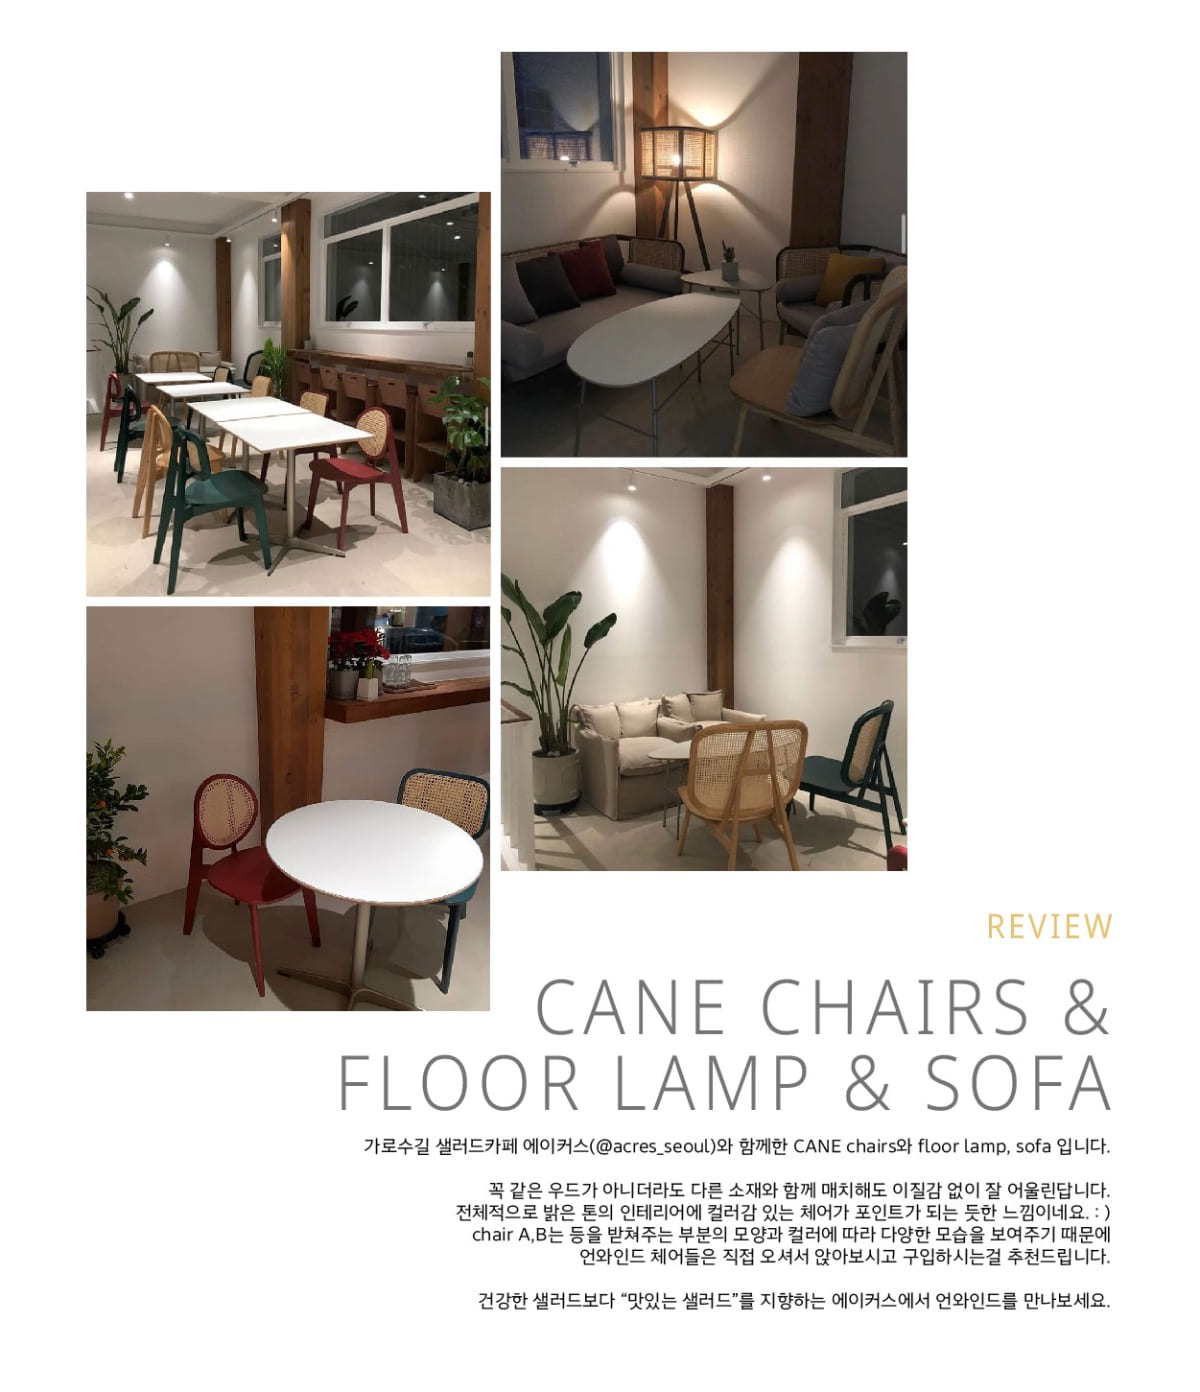 CANE chairs & floor lamp & sofa